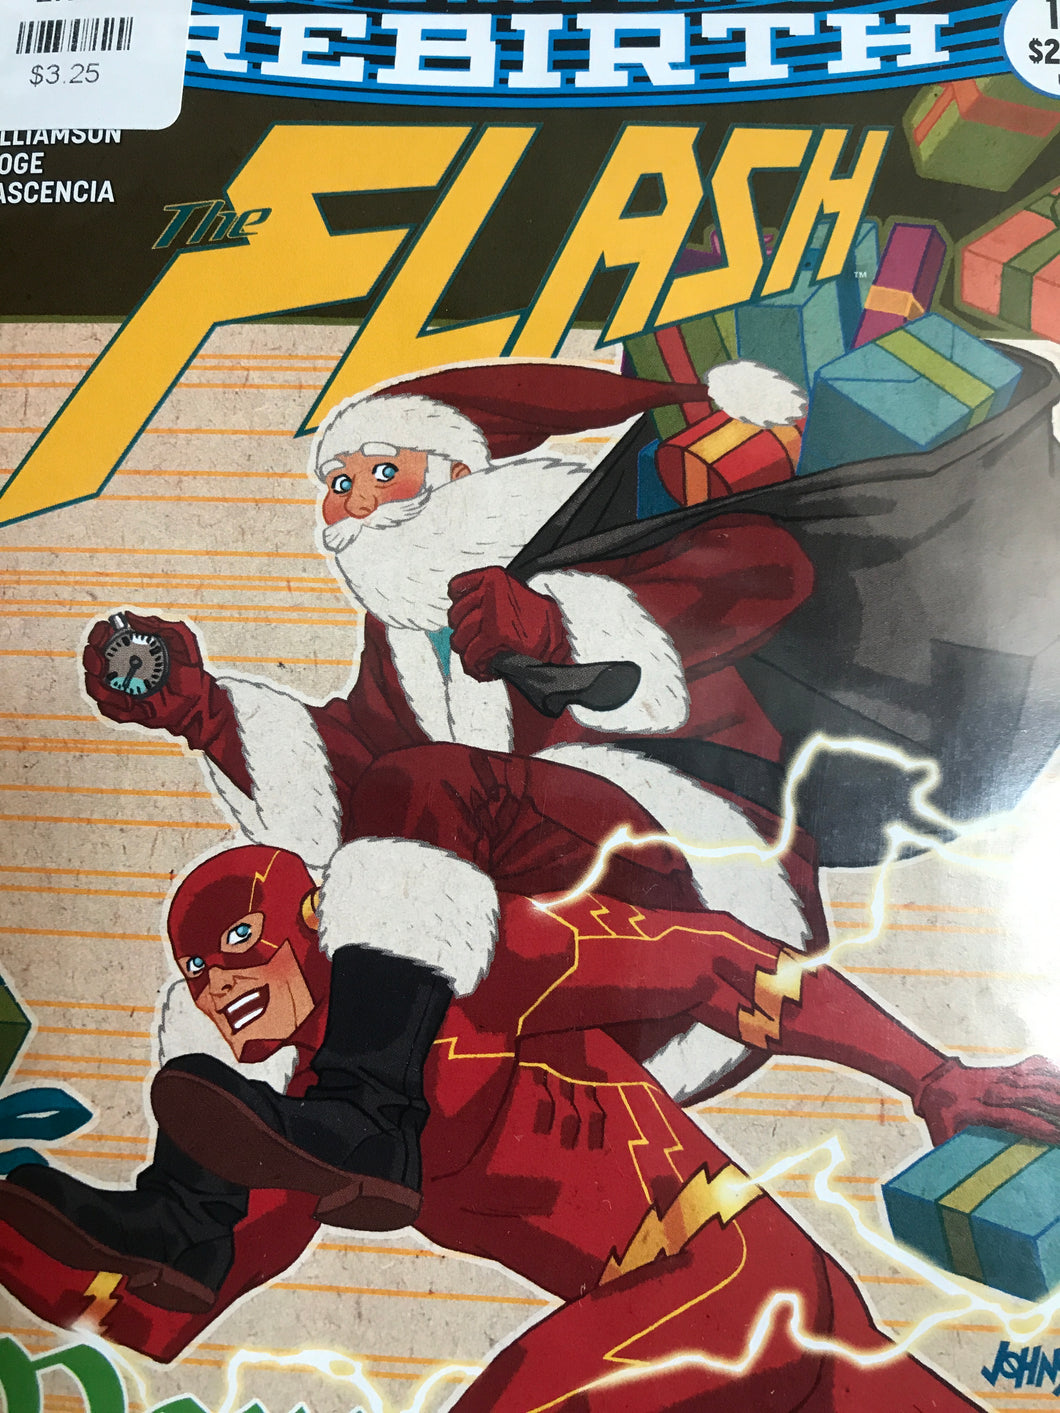 The Flash #13 (Rebirth) (Variant Cover)